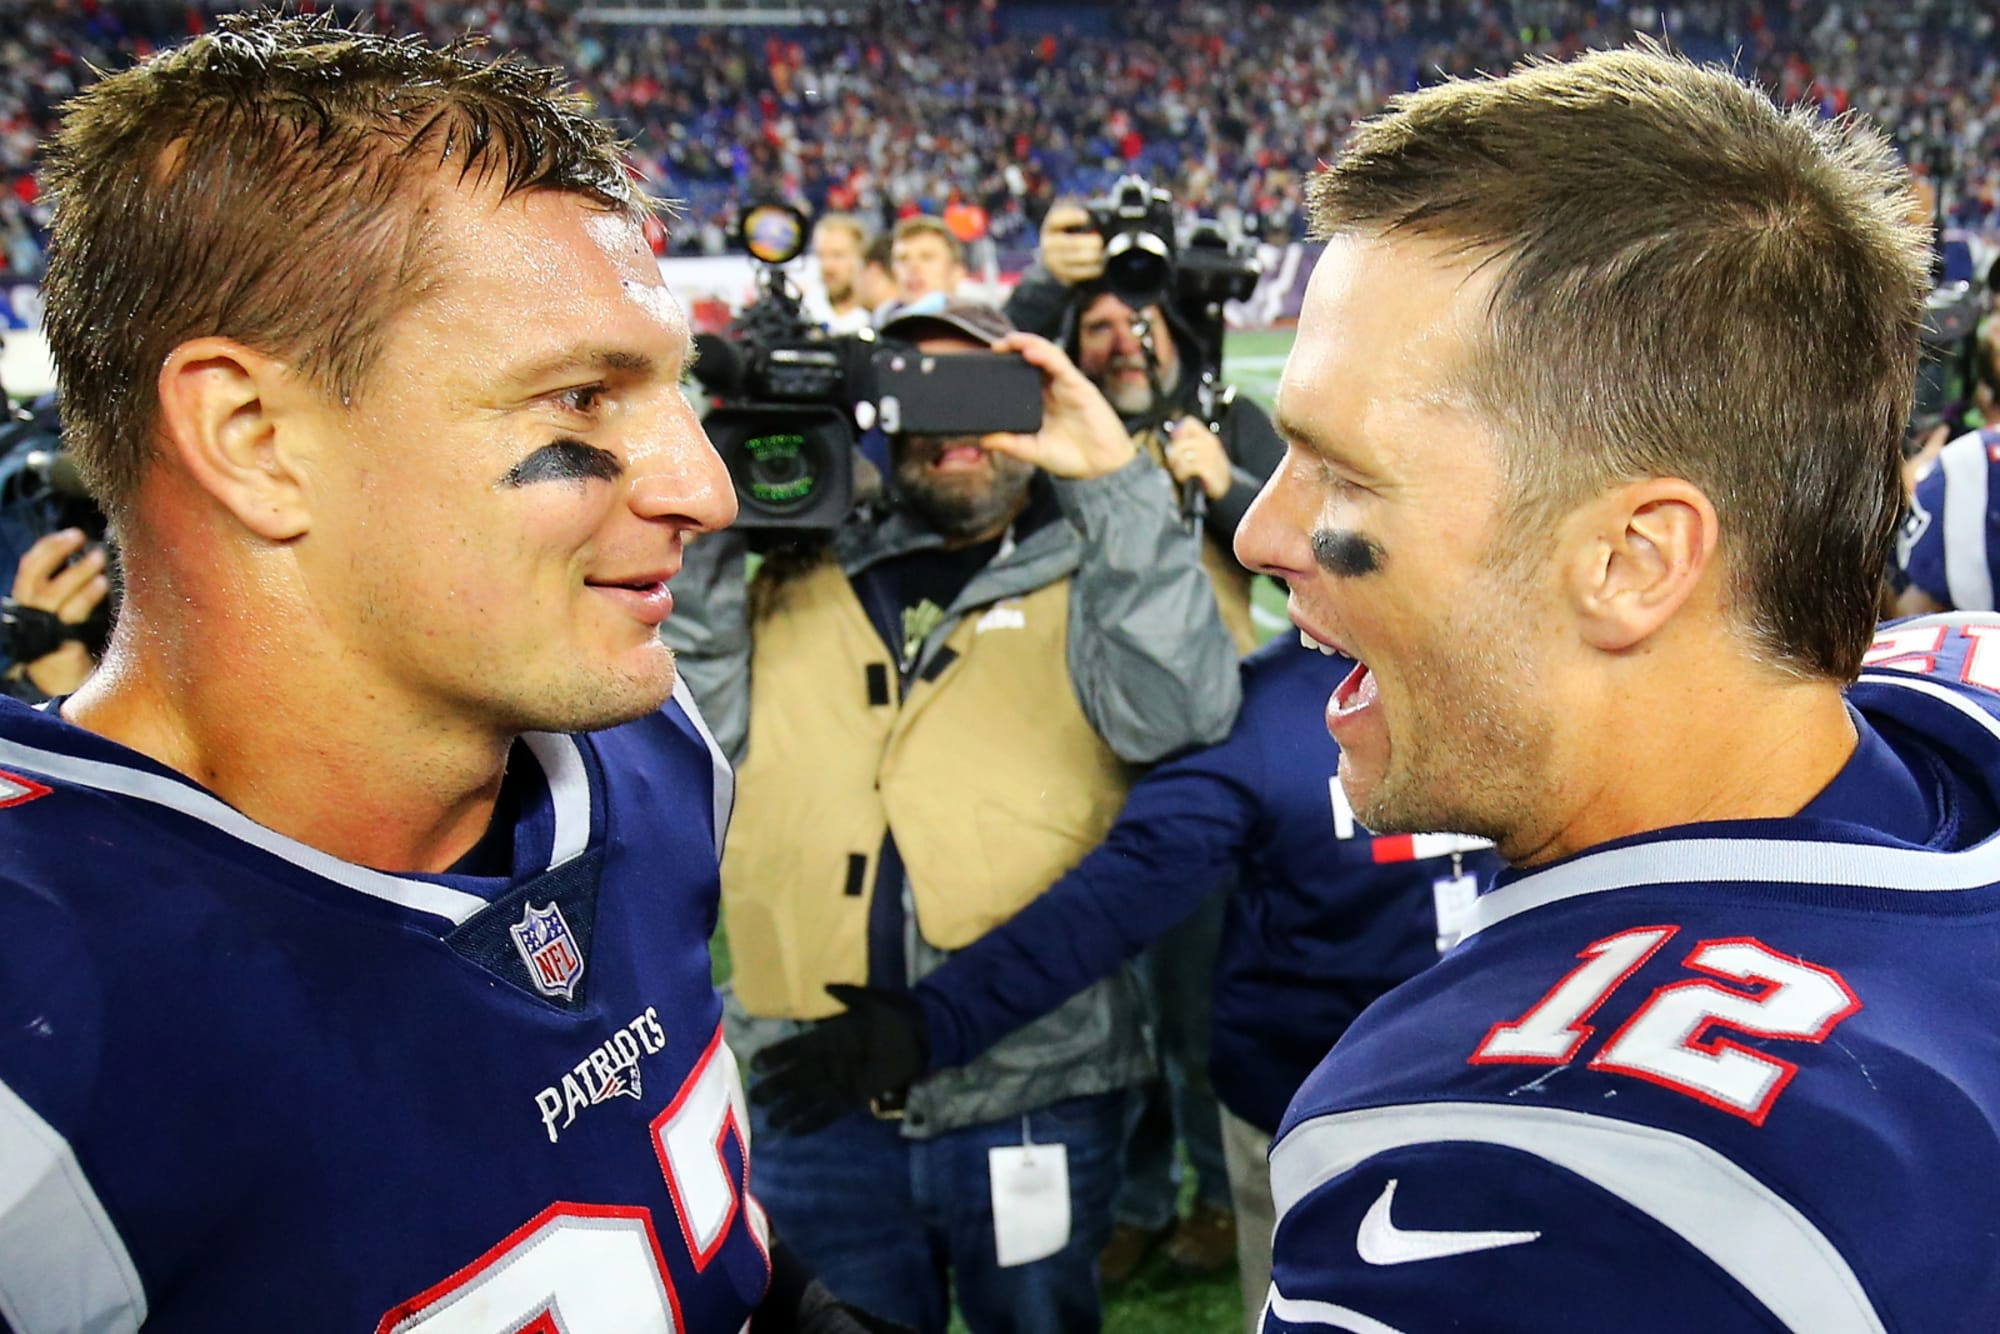 Rumors surface that Rob Gronkowski could rejoin Tom Brady